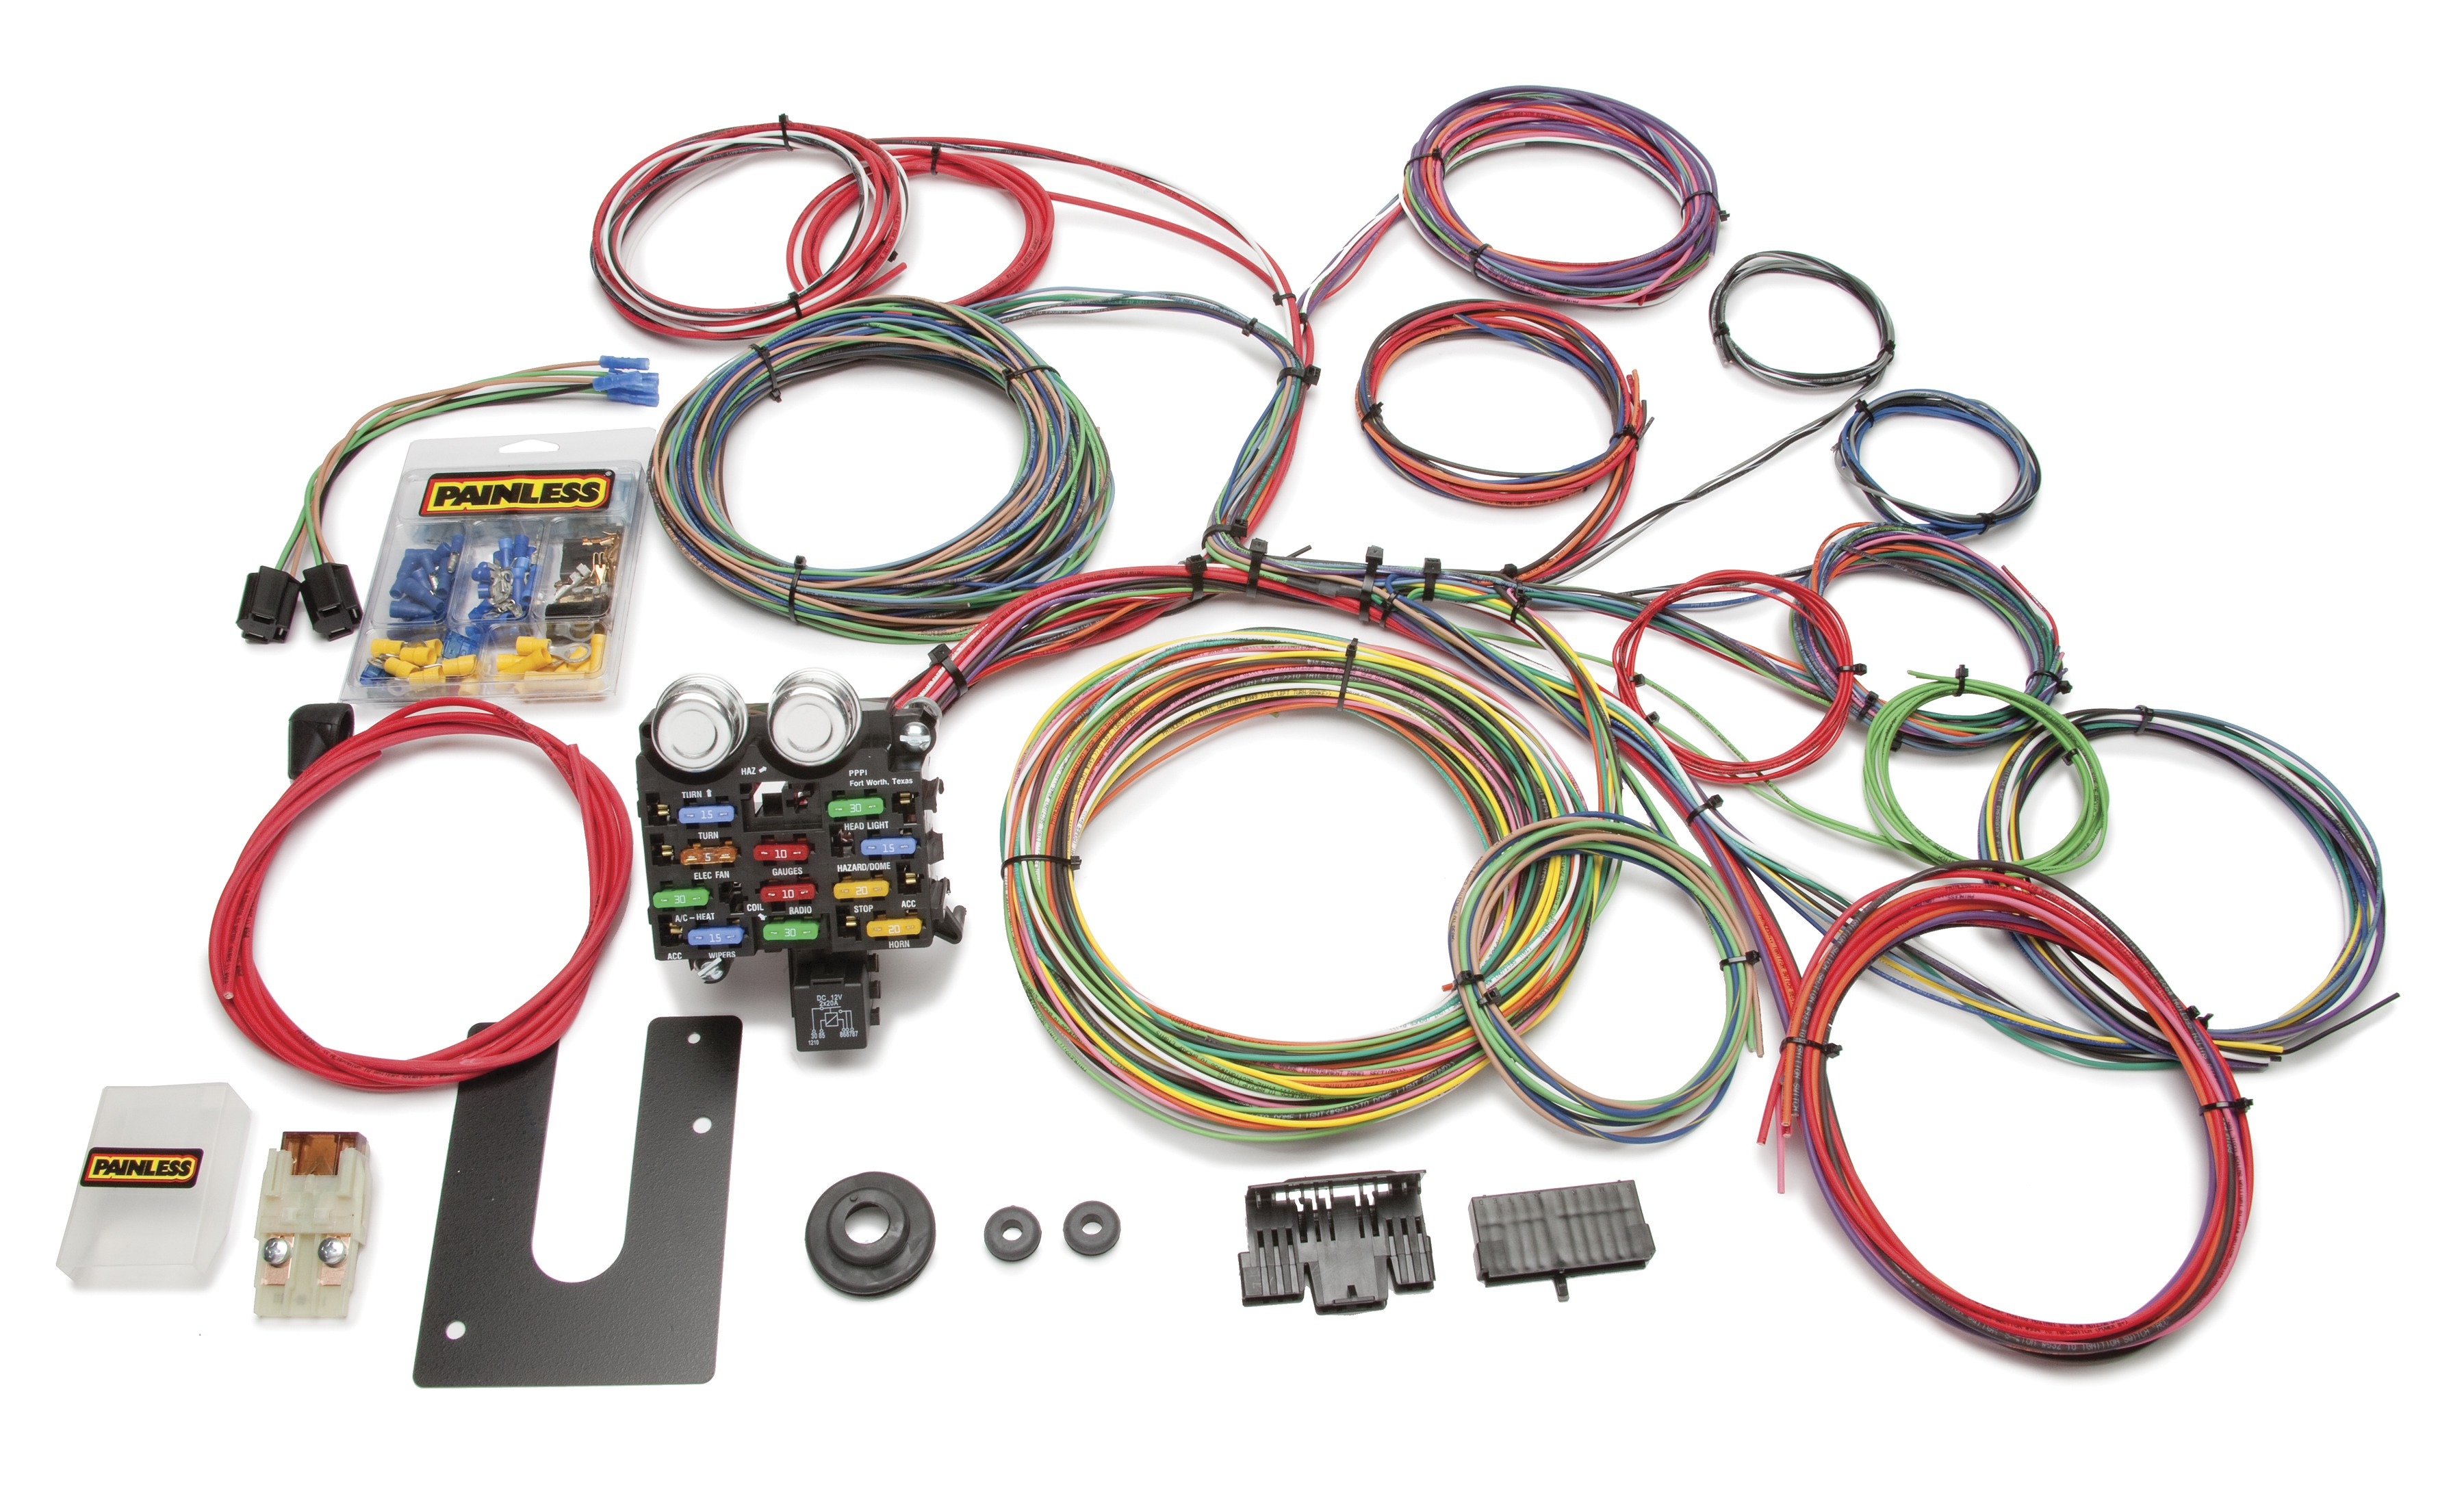 Centech Wiring Harness Early Bronco Instructions 48 Diagram Prf 10102resize6652c401 Diagrams Jeep Cj8